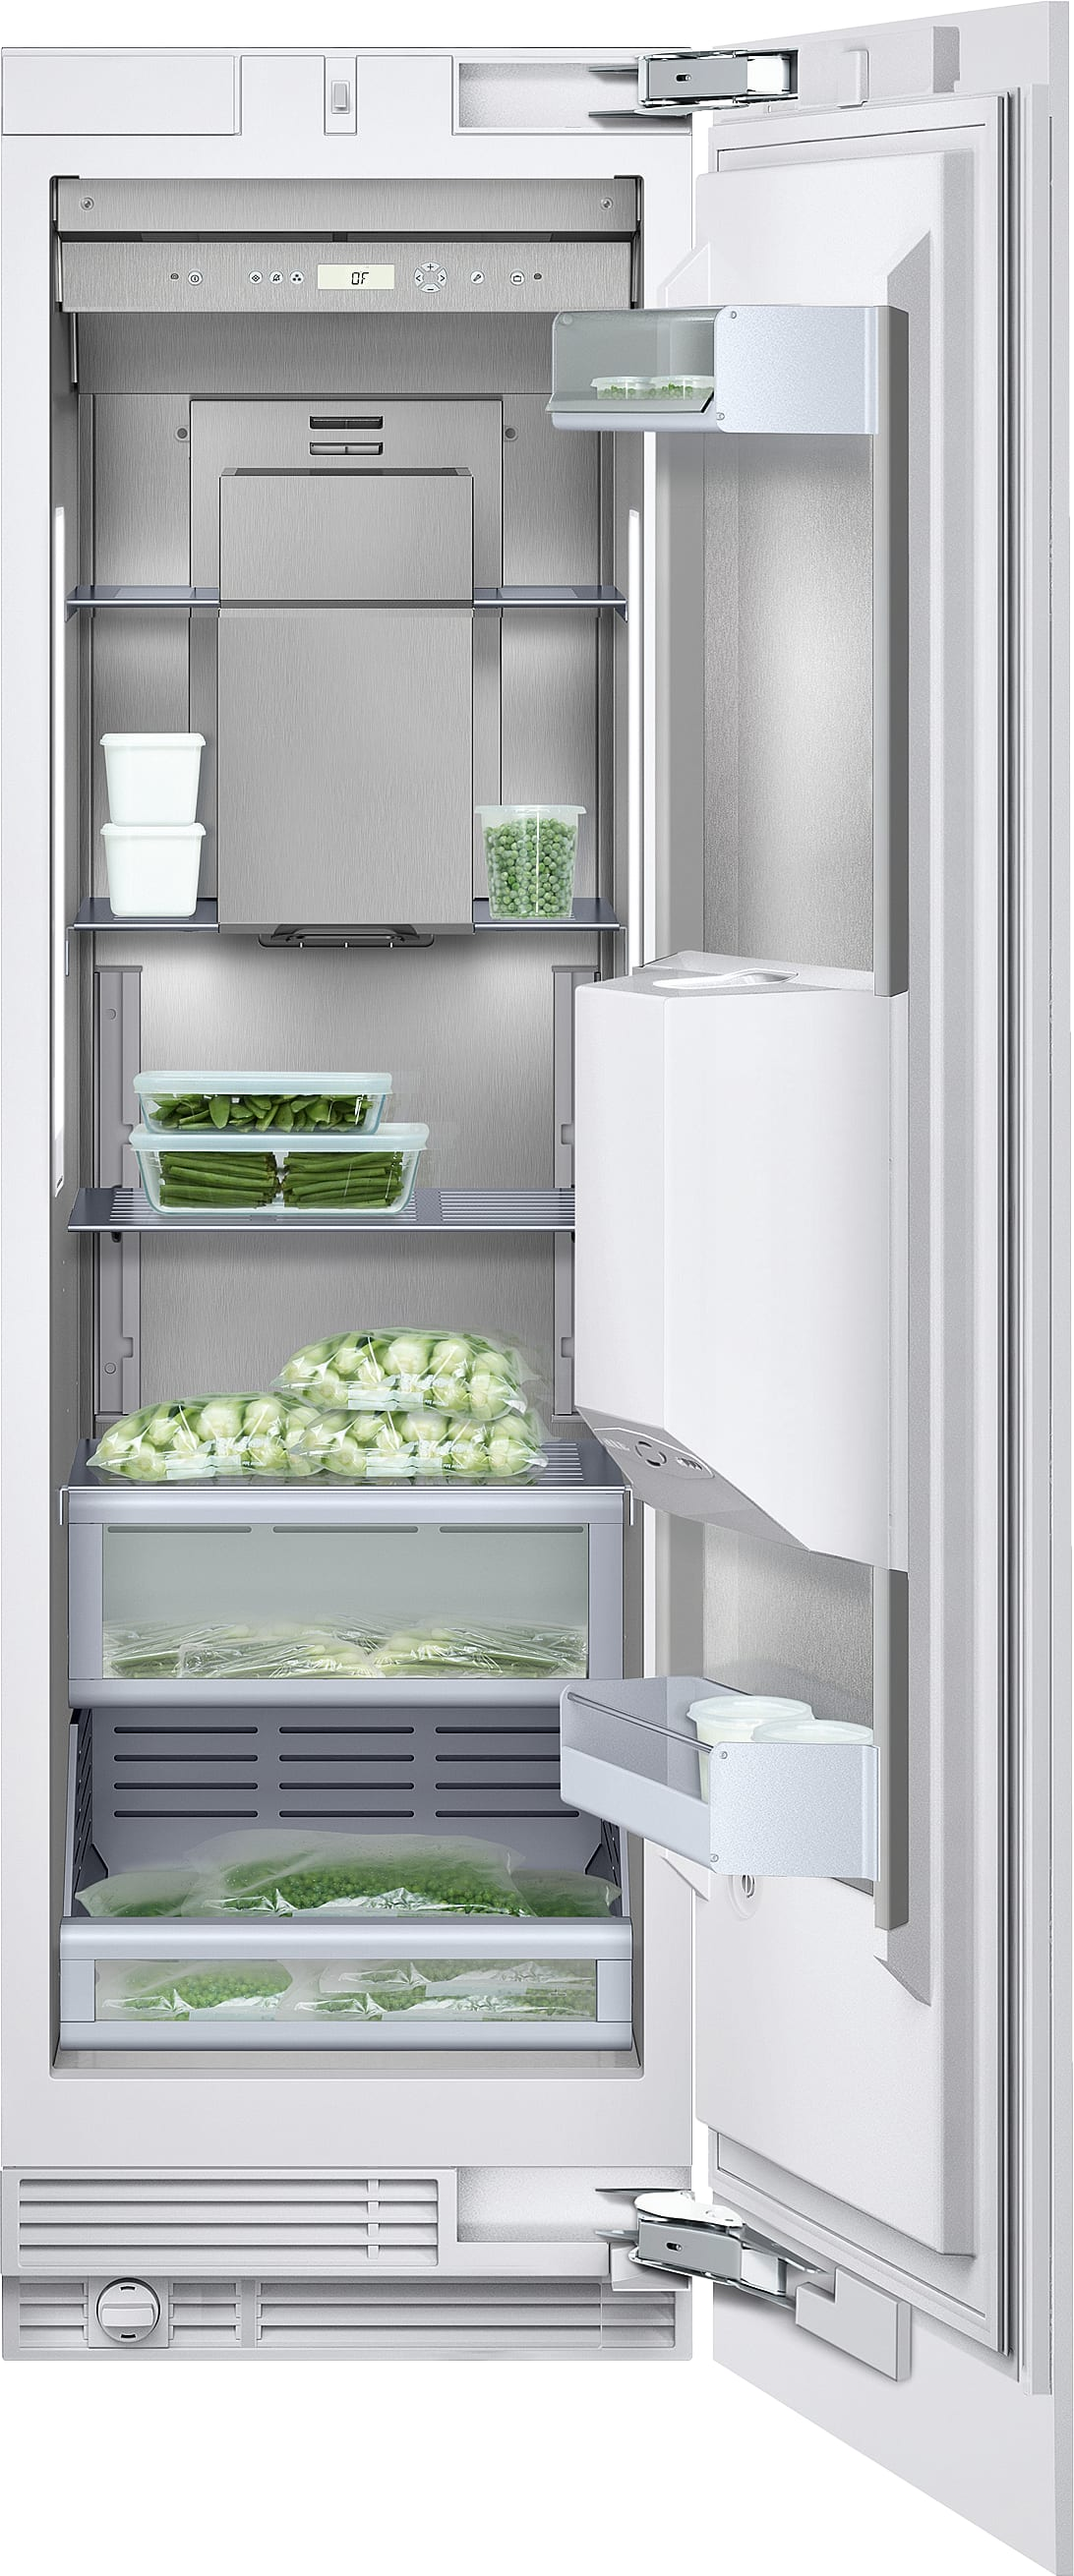 Gaggenau Rf463702 24 Inch Built In Freezer Column With Ice